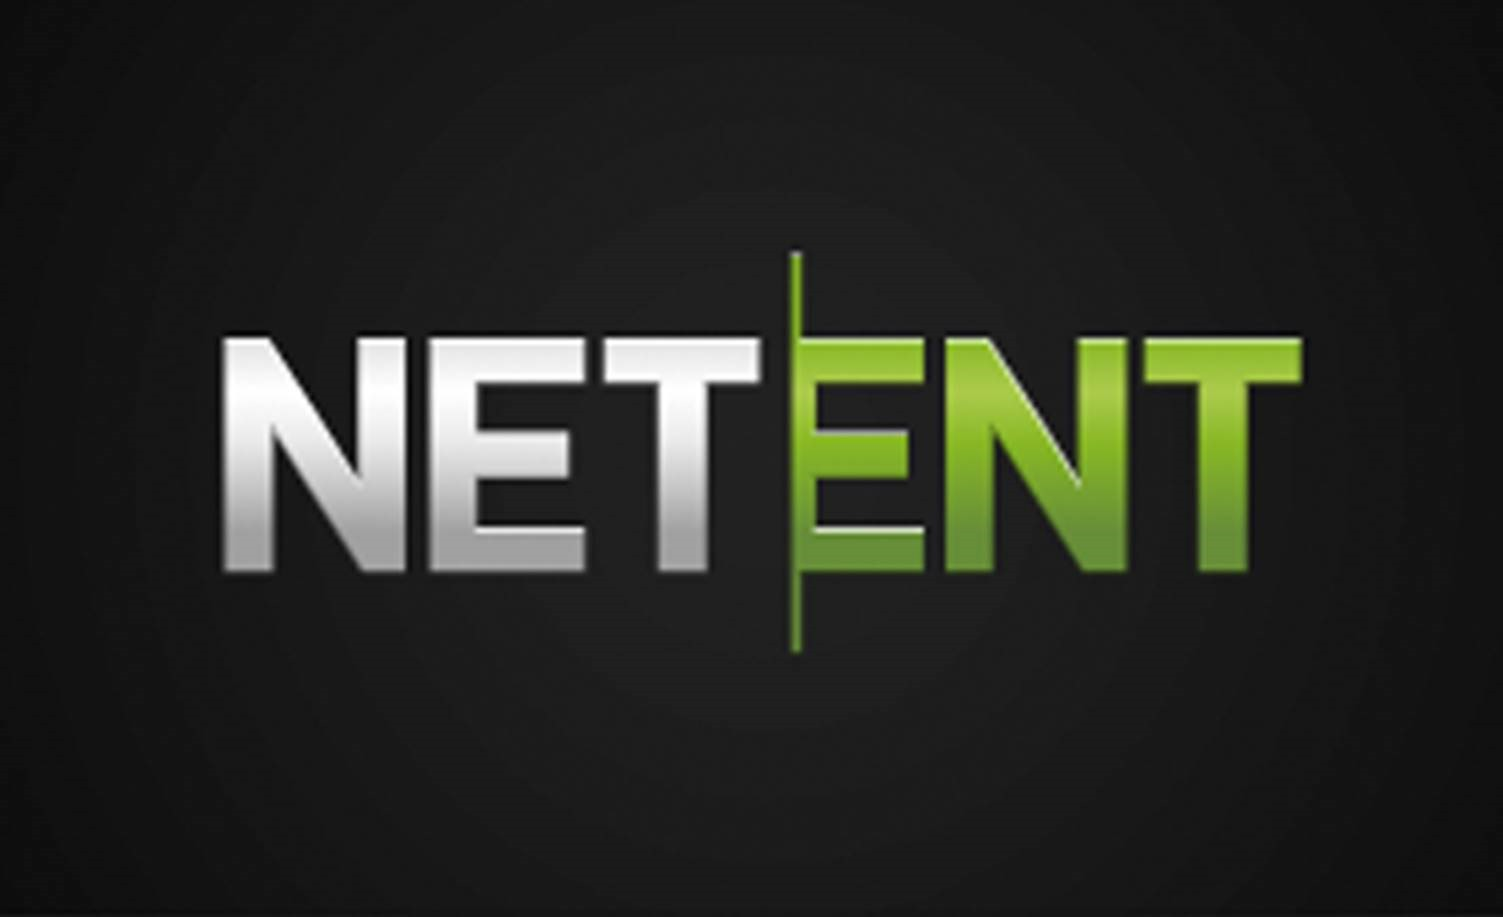 netent product services